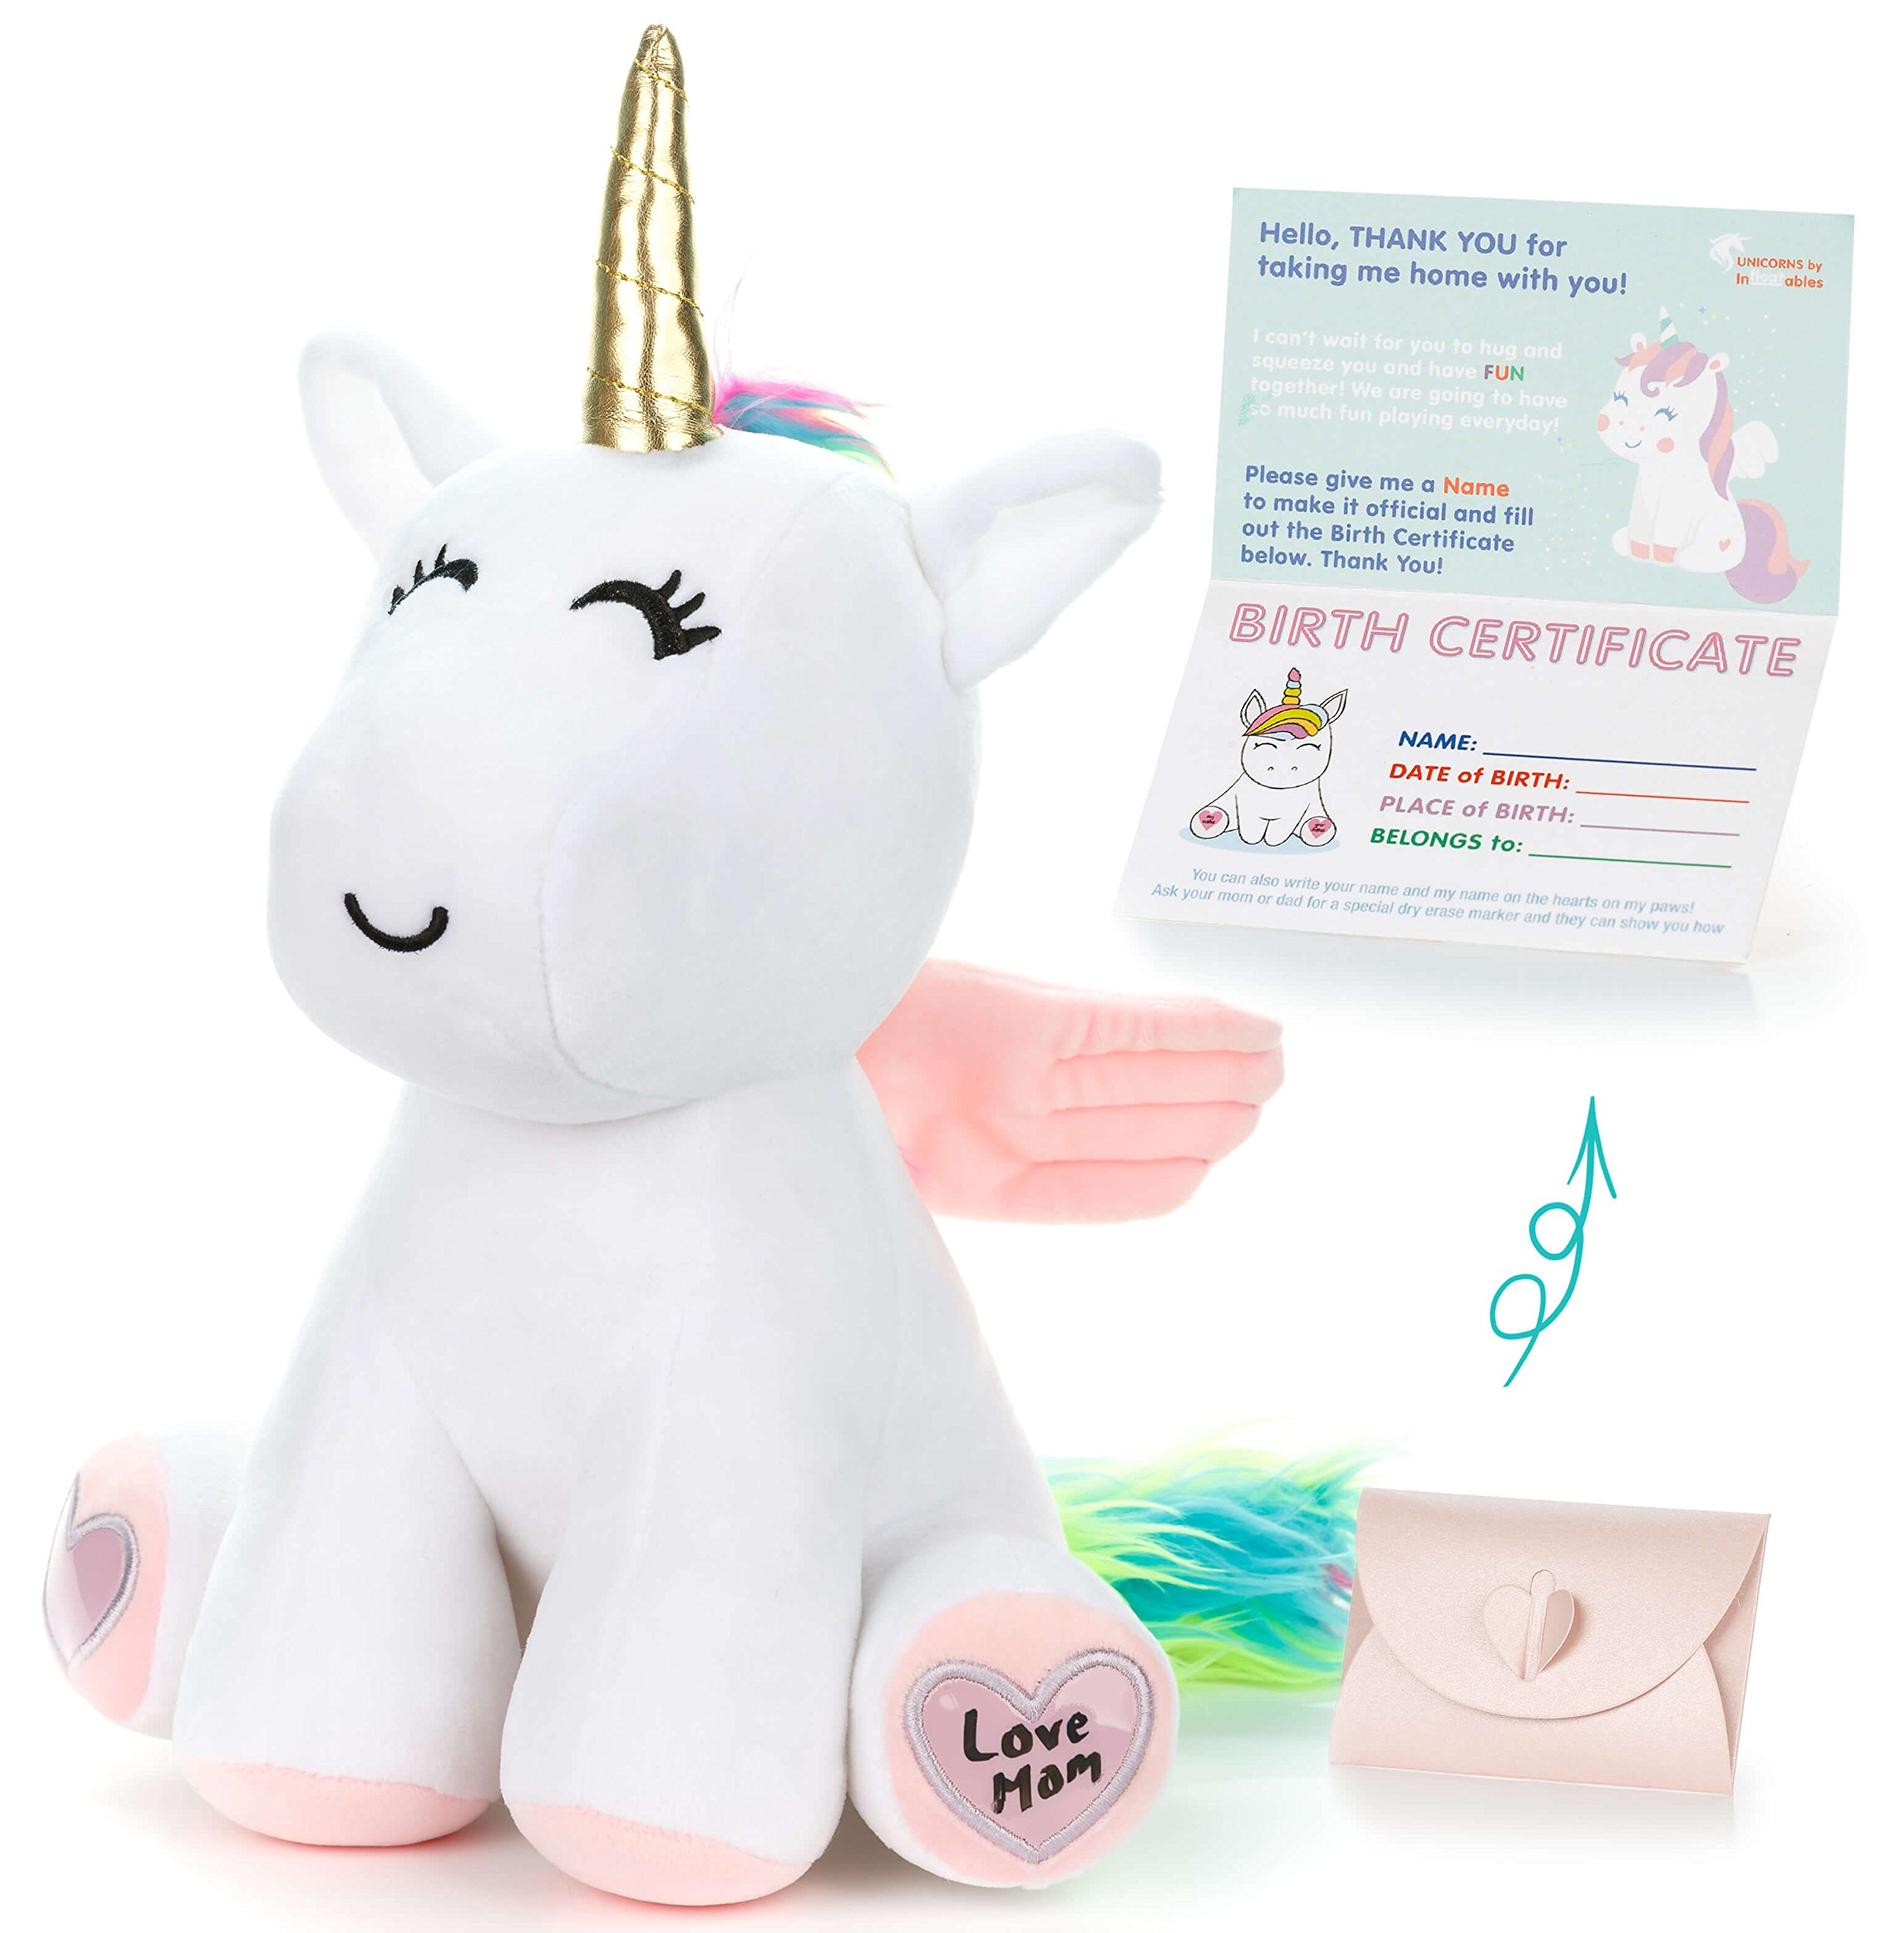 Unicorn Stuffed Animal - Cute Unicorn Gifts Large 13'' White Unicorns Plush Toy w Pink Wings Rainbow Hair & Writable Pink Heart Paws! Gift Packaged for Graduation, Birthday or Valentines Gift for Girls by infloatables